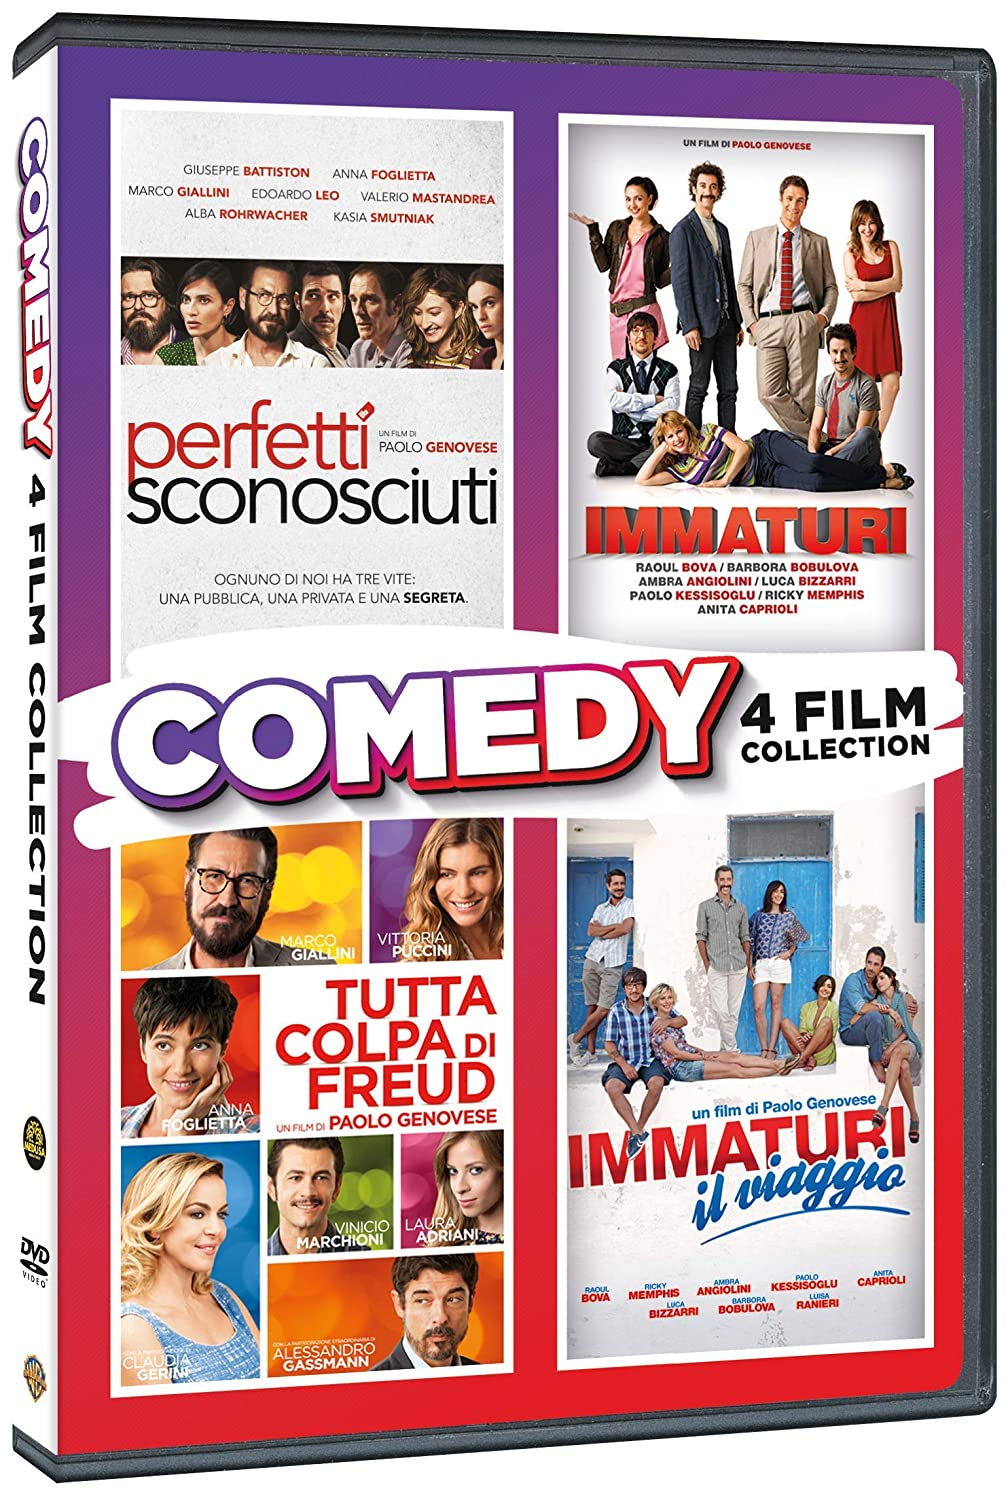 COF.PAOLO GENOVESE COMEDY COLLECTION (4 DVD) (DVD)